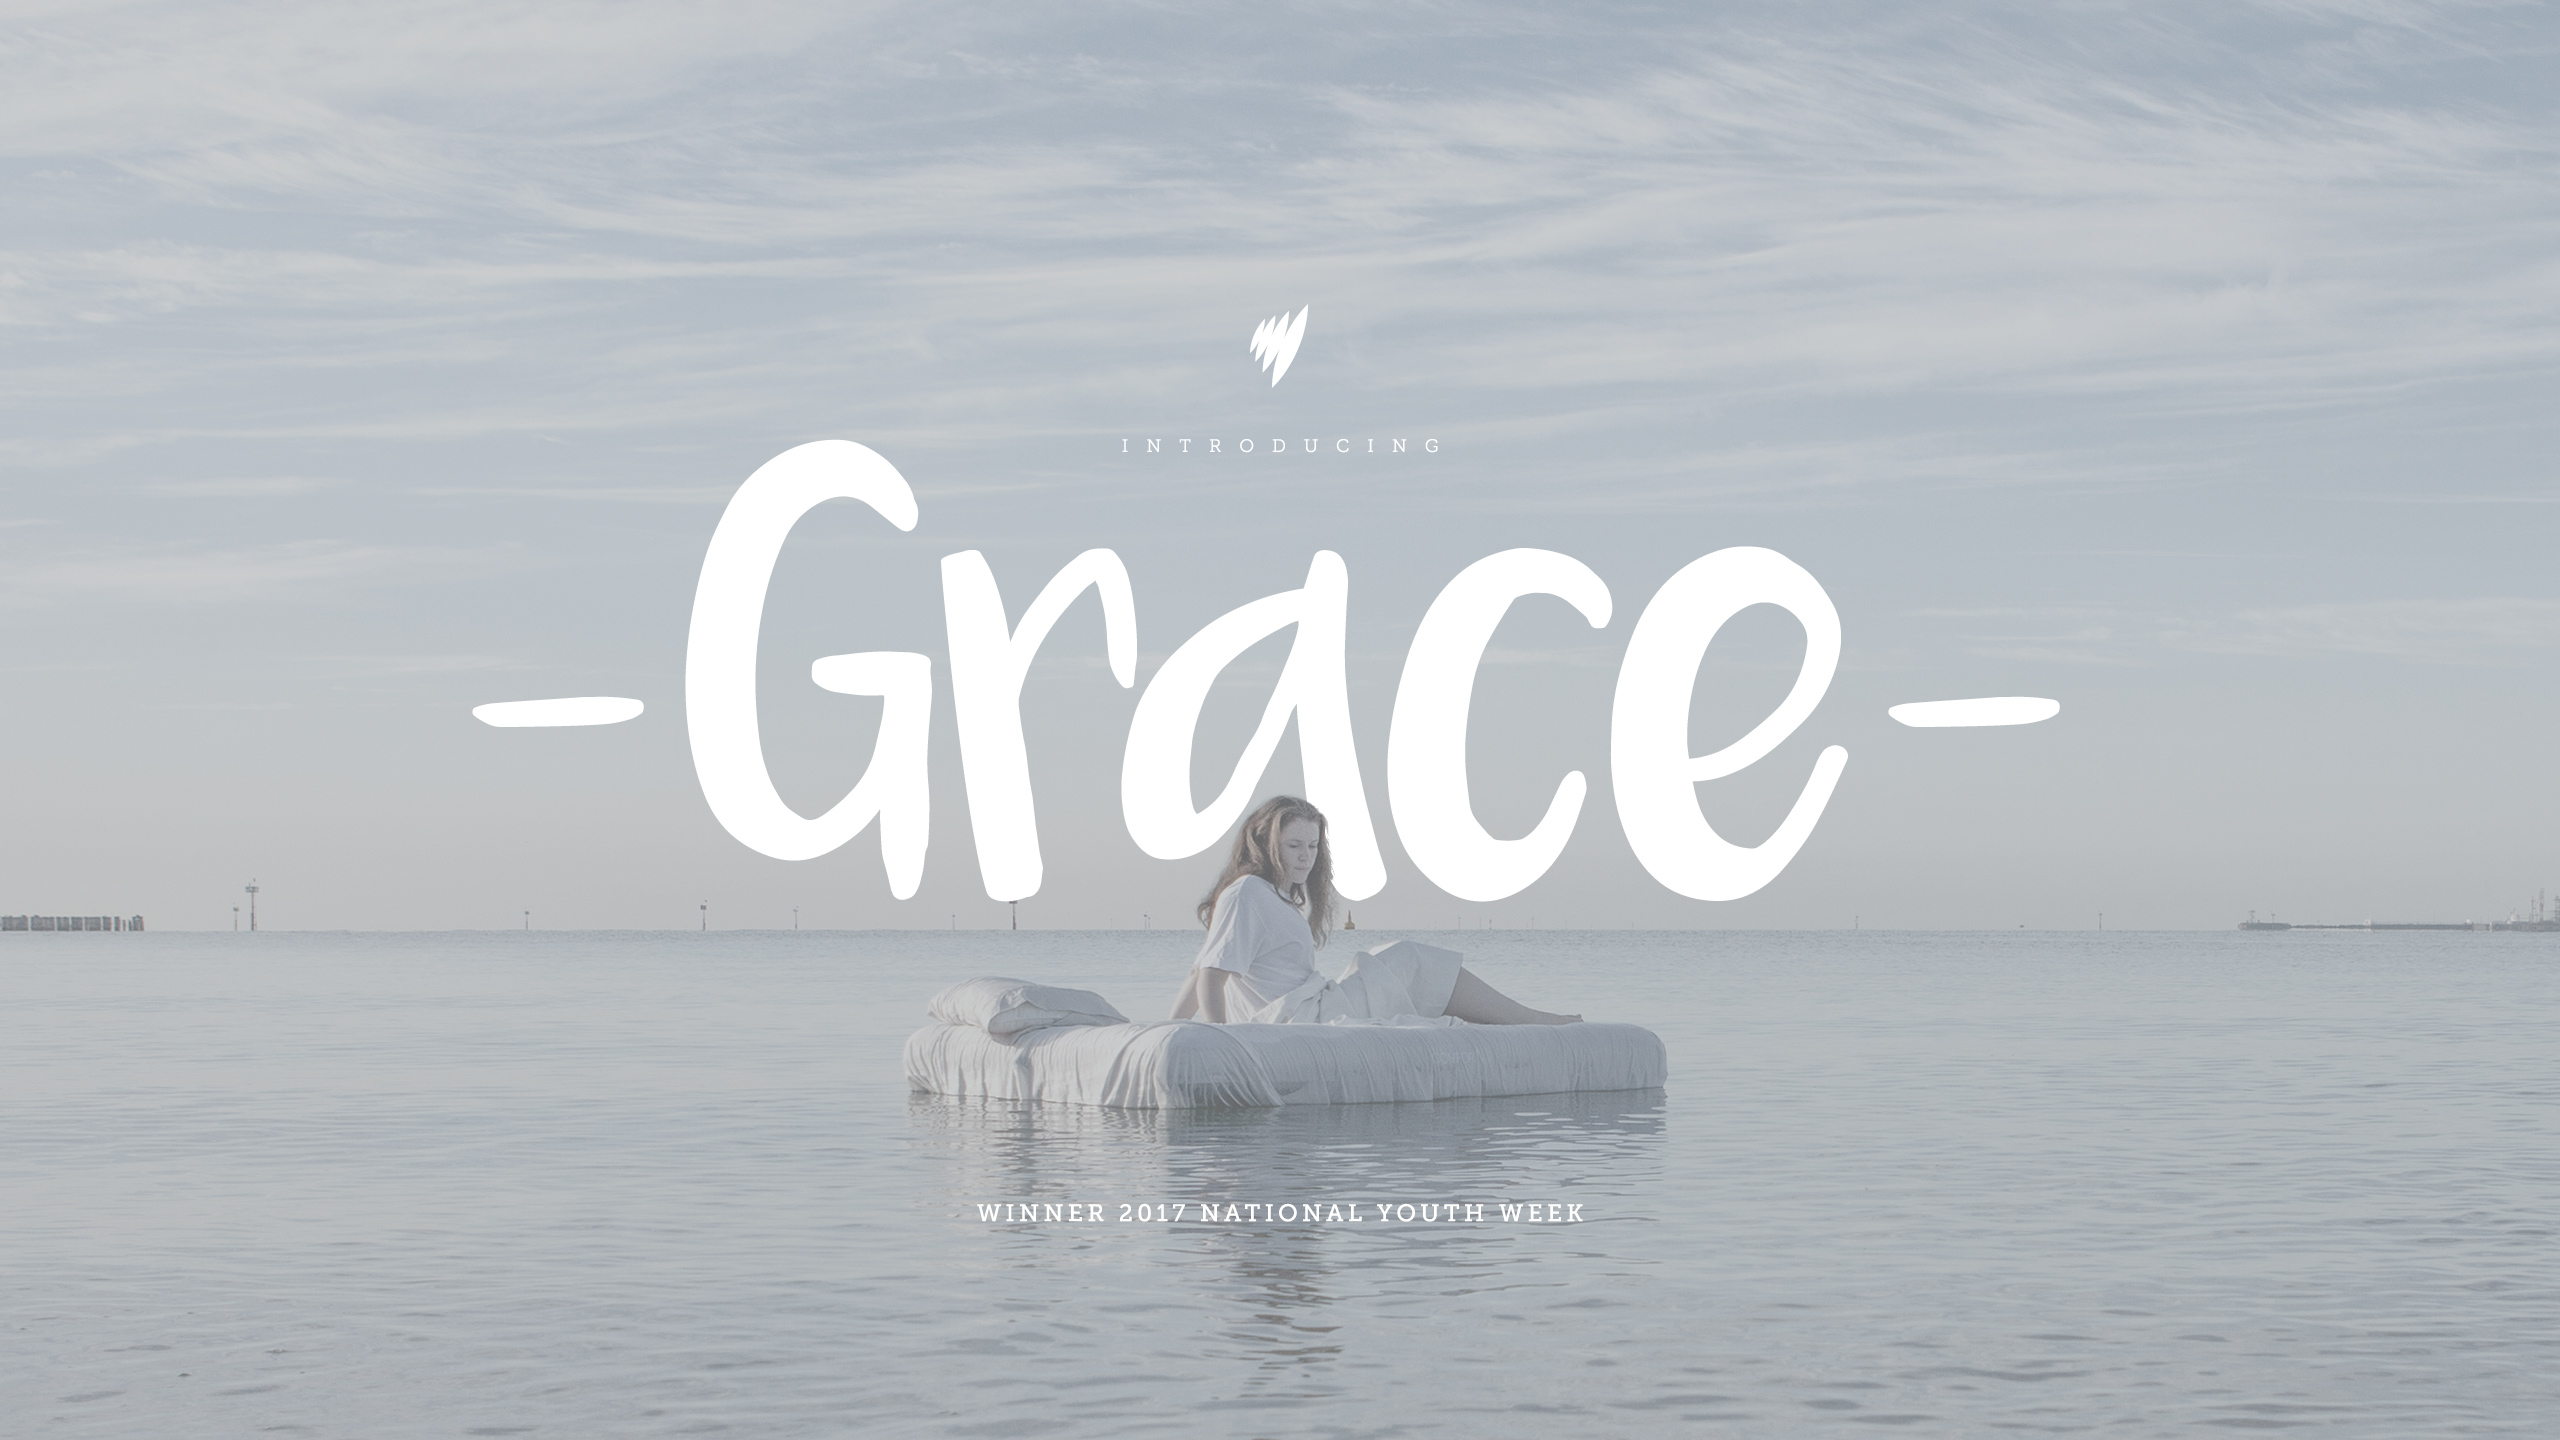 2017 National Youth Week: Introducing Grace